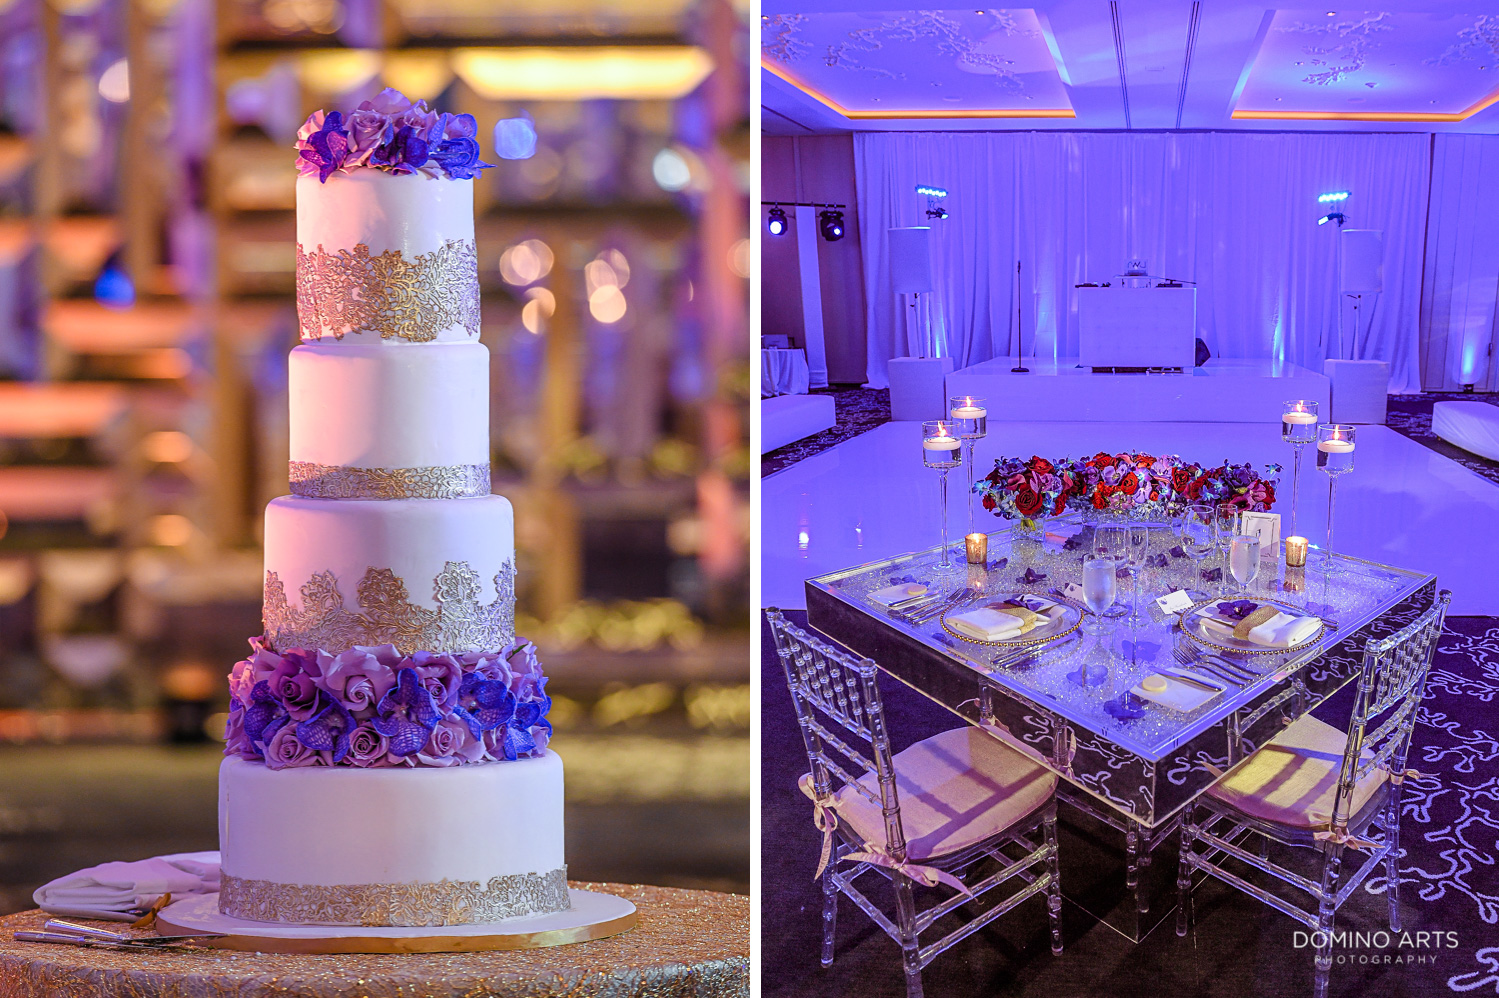 Wedding cake picture in contemporary and elegant design at The St. Regis Bal Harbour